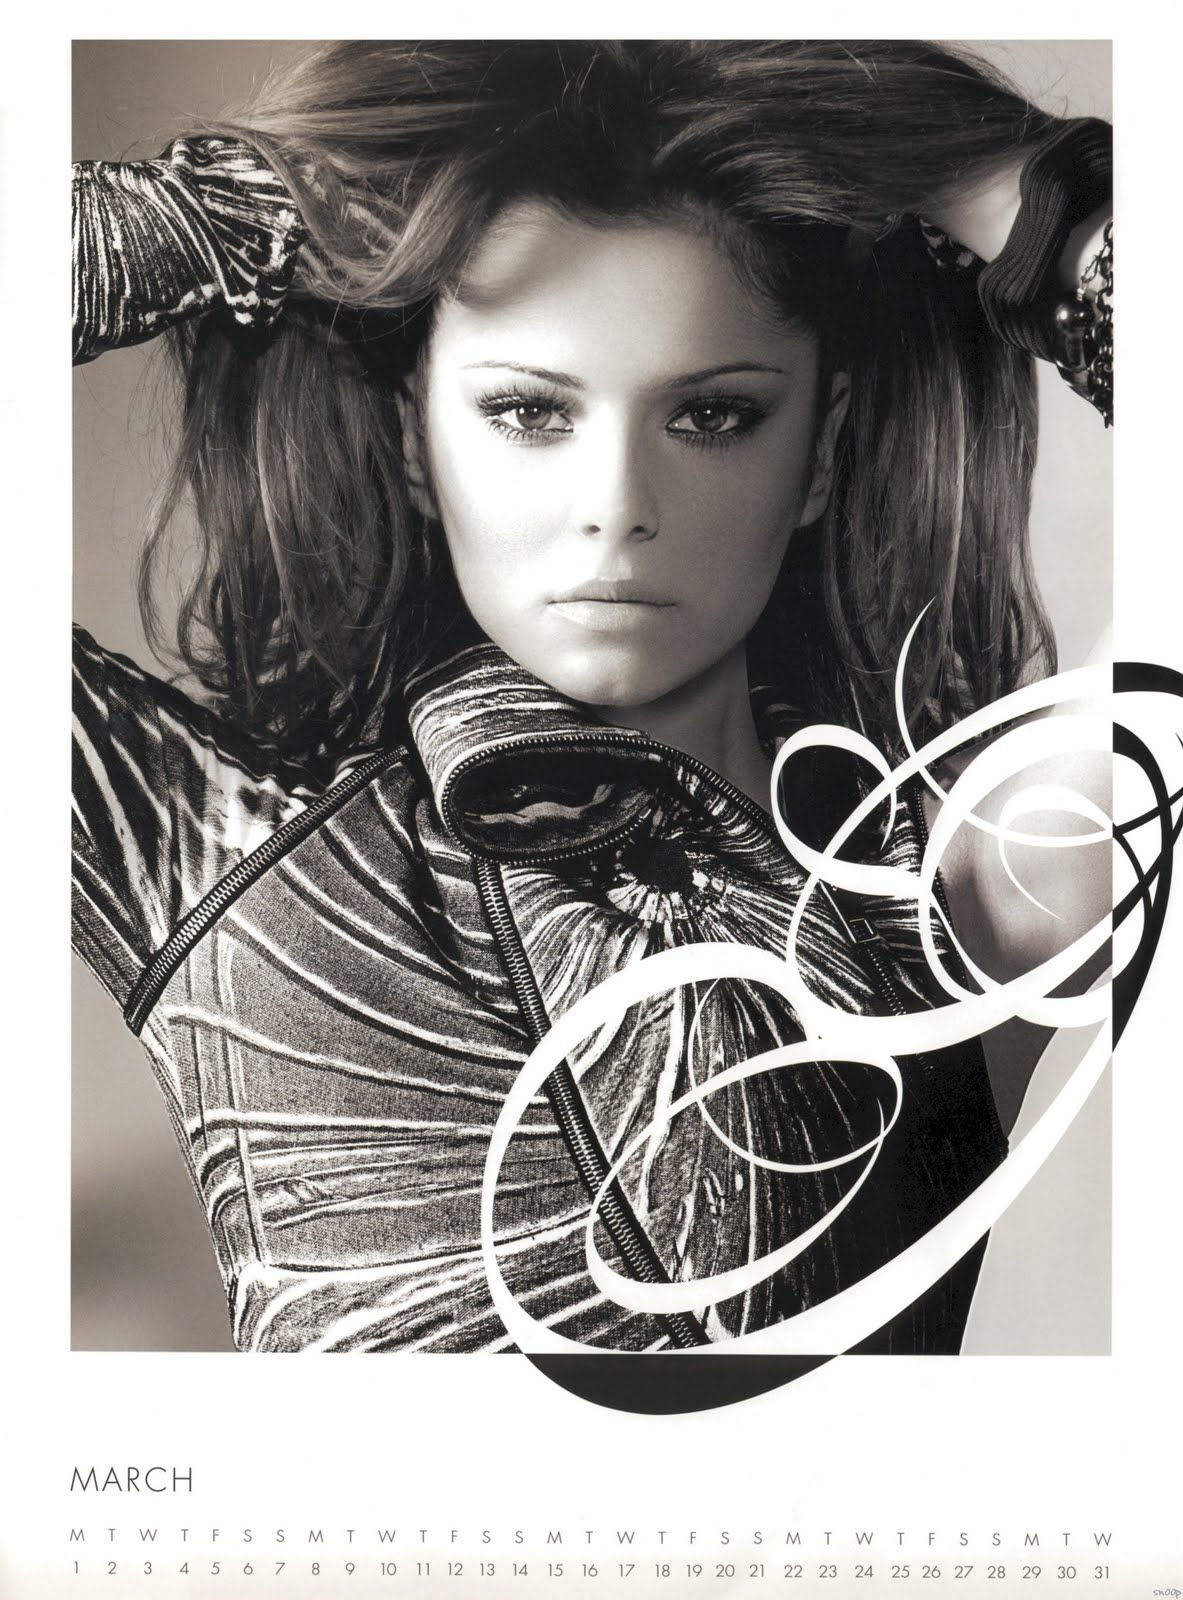 http://3.bp.blogspot.com/_mXAI3IWhFFc/TJSCXY3_vbI/AAAAAAAAAas/6mHDJPEXbx0/s1600/11592_Cheryl_Cole_-_Official_2010_Calendar_-_03_-_March_-_Normal_-snoop-_122_205lo.jpg